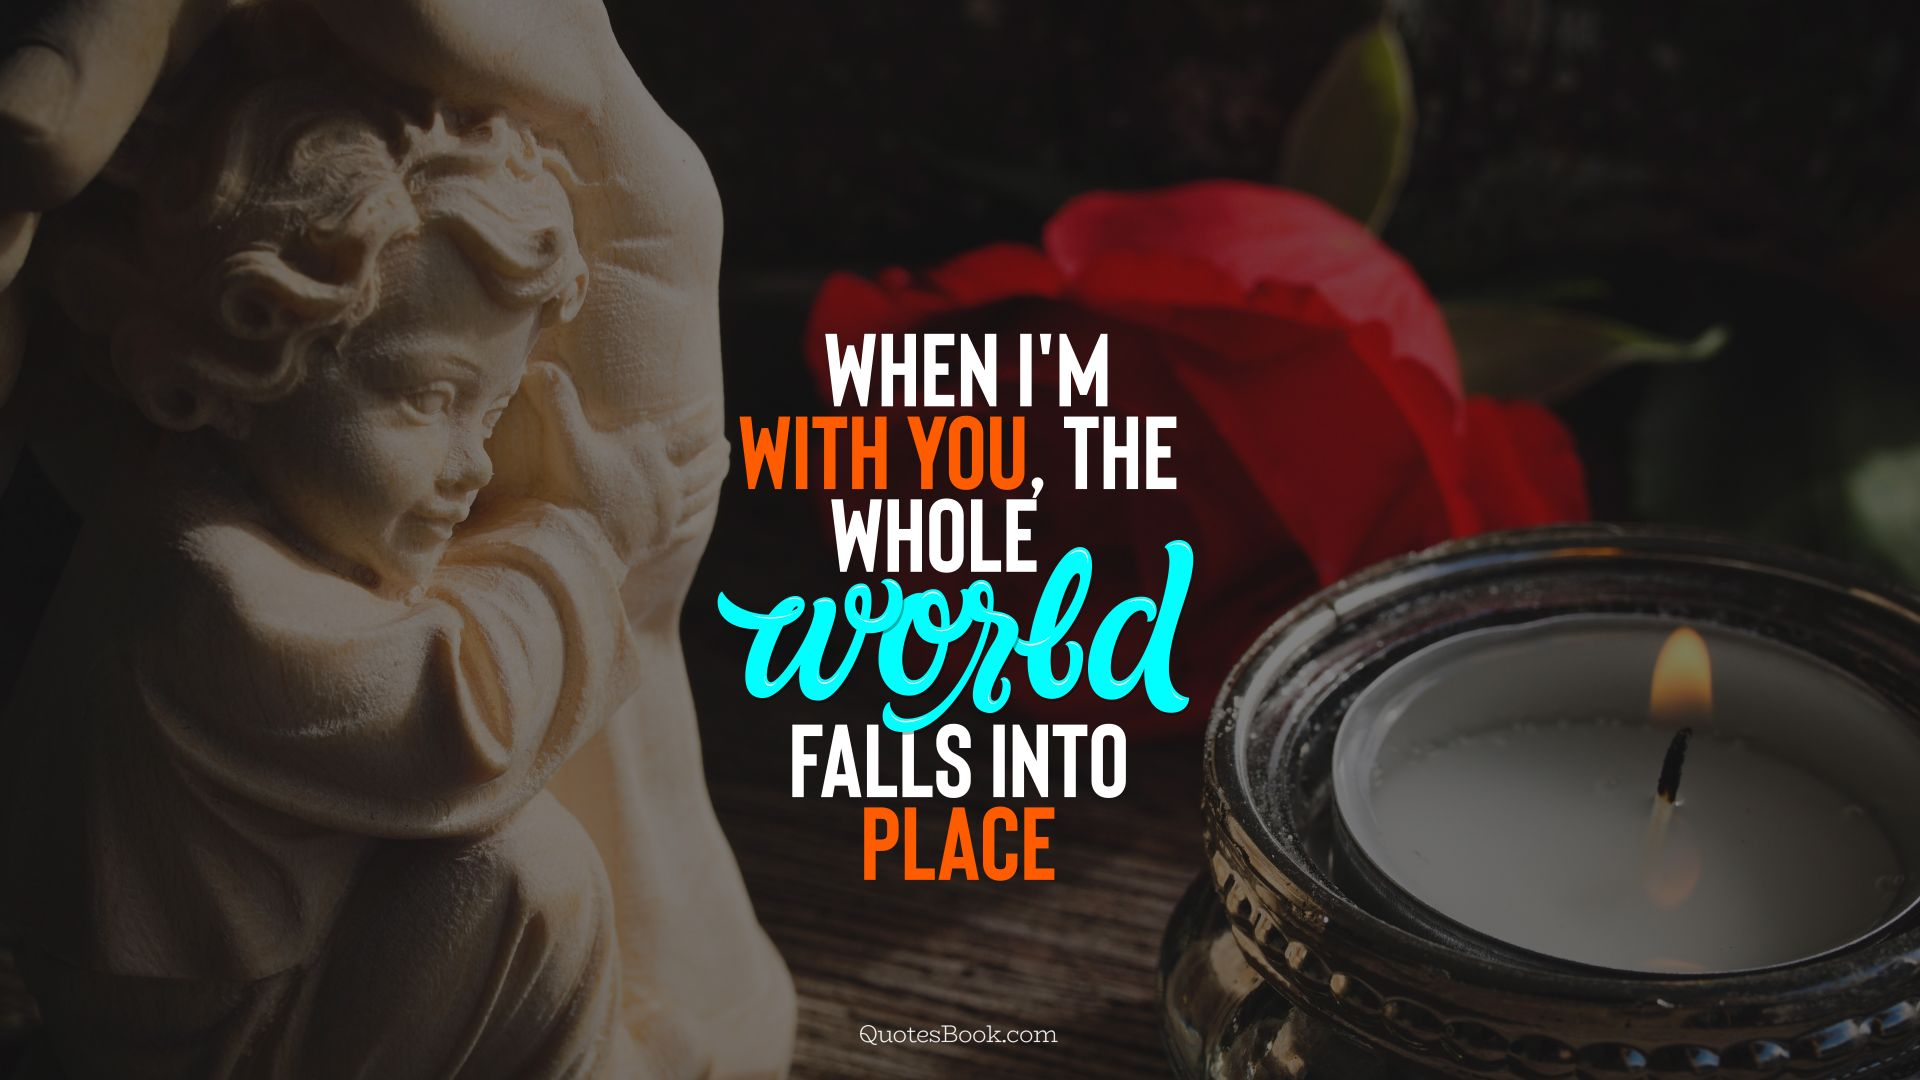 When I'm with you, the whole world falls into place. - Quote by QuotesBook